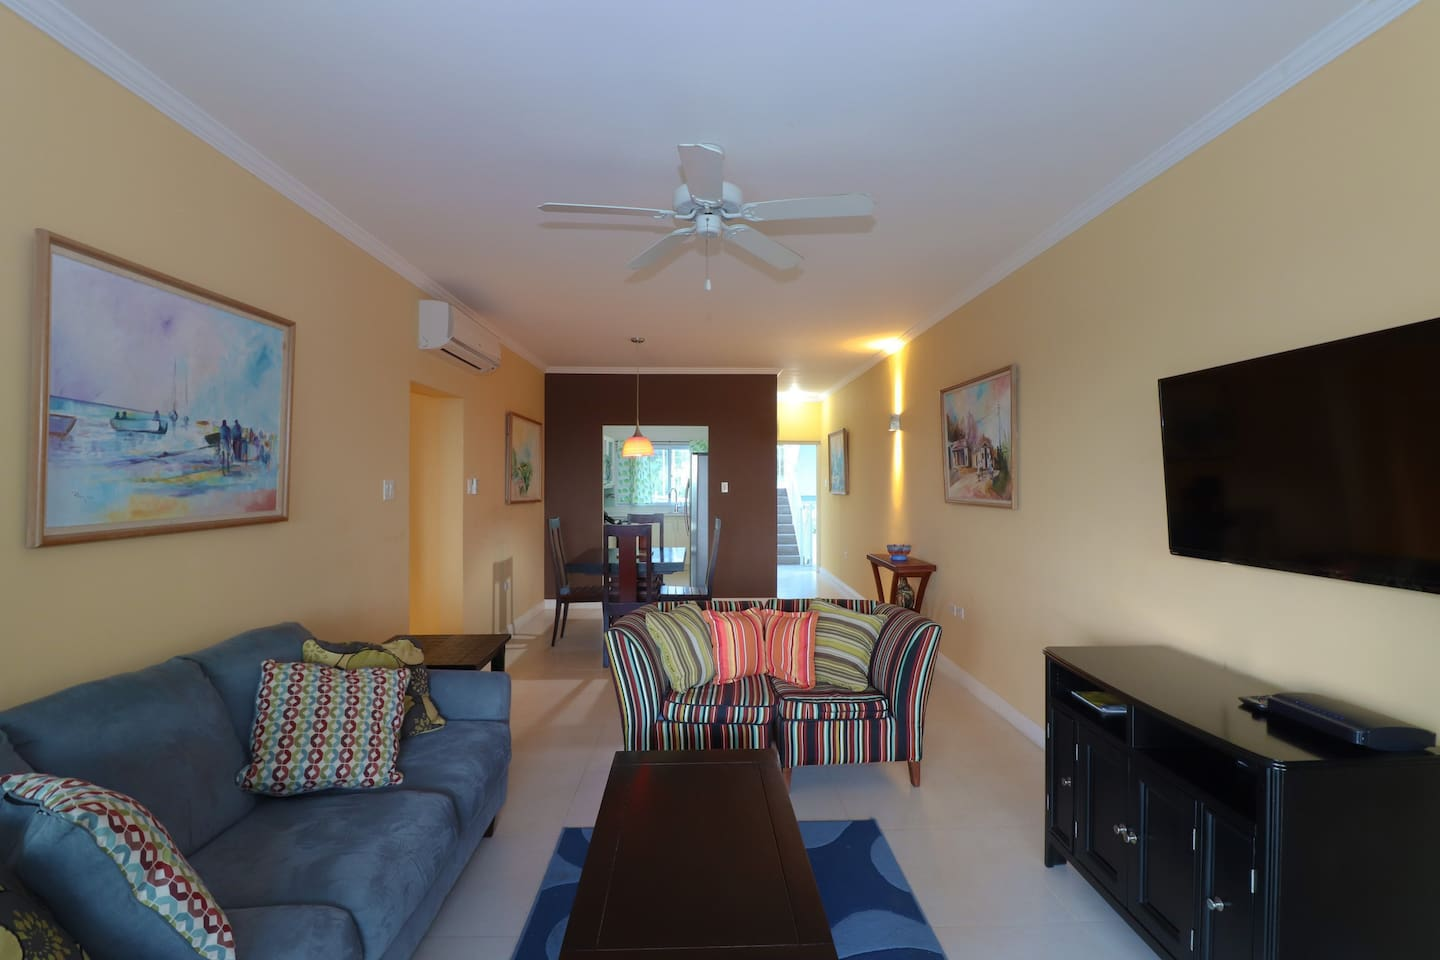 Living Area with dining table and kitchen entrance. Equipped with WiFi and HD tv, A/C and ceiling fan